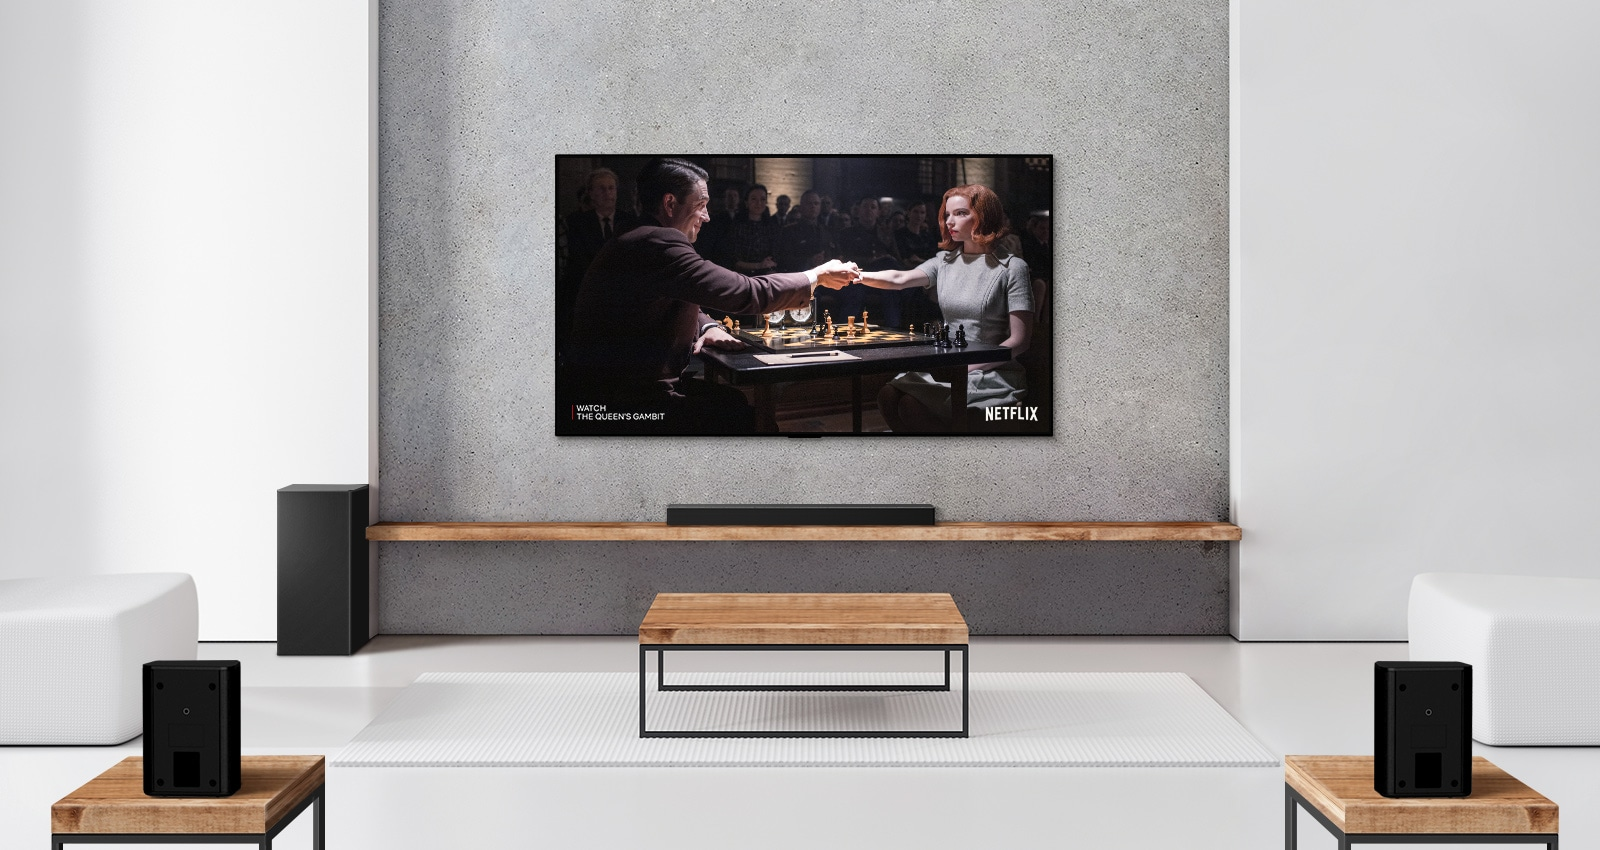 A set of 2 rear speakers, subwoofer, and a soundbar, and TV are in a white living room. A woman and a man are playing chess on TV screen.